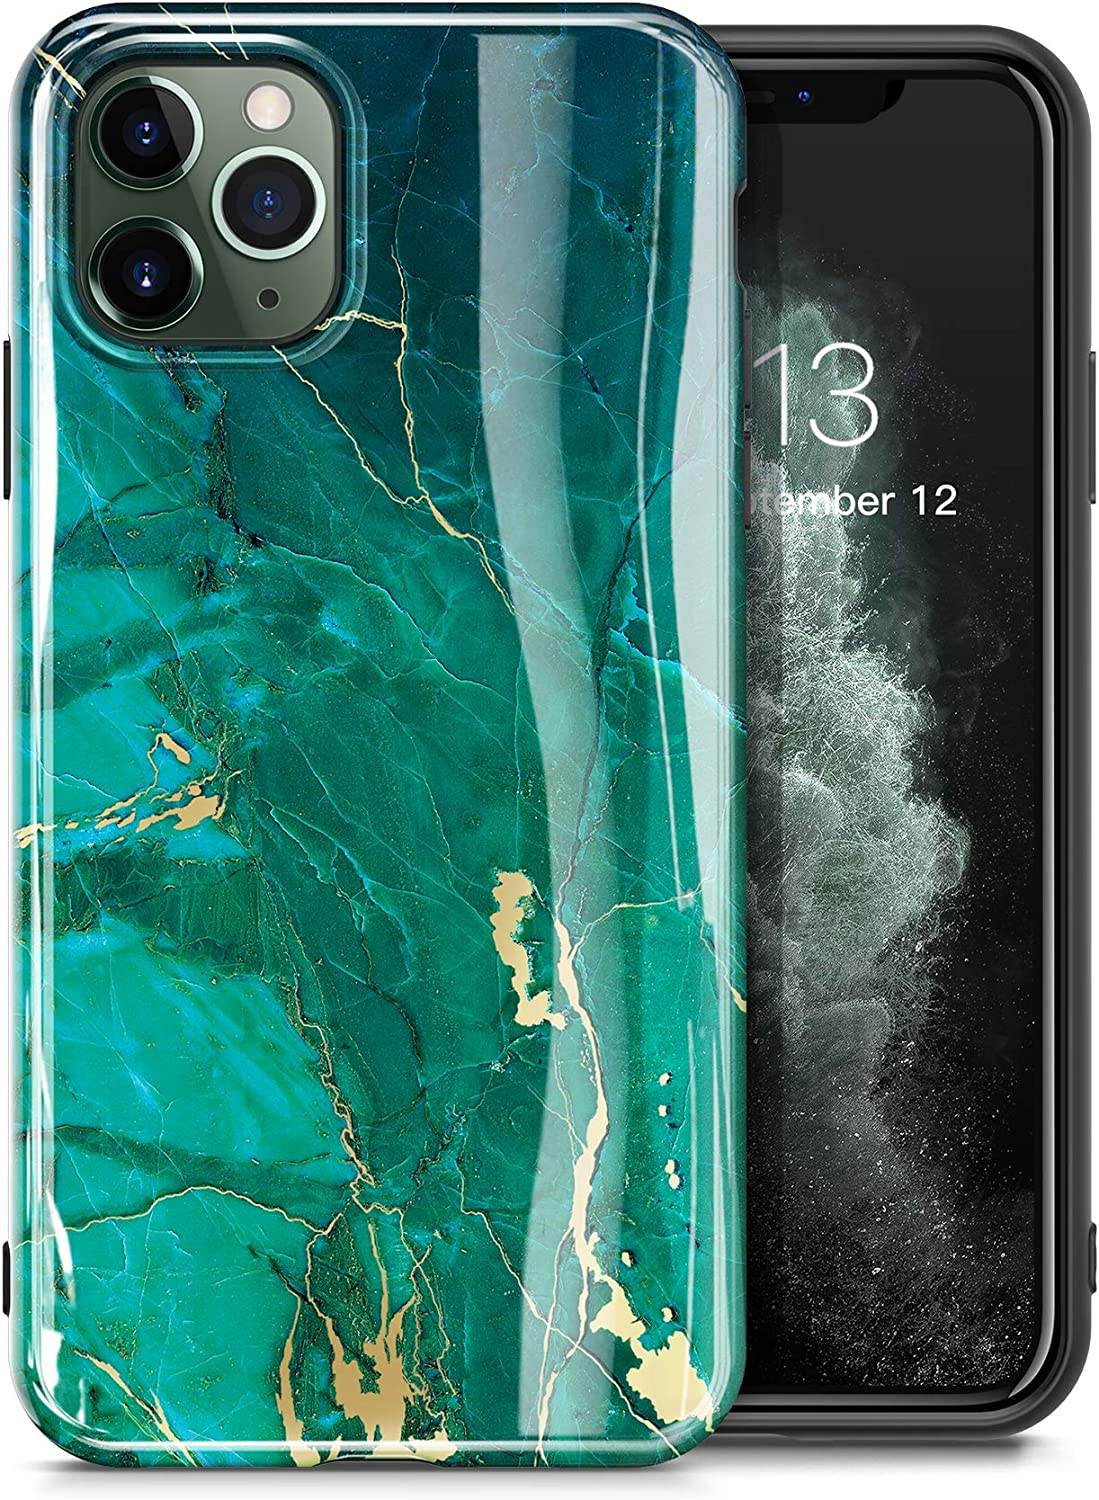 GVIEWIN Marble iPhone 11 Pro Case, Ultra Slim Thin Glossy Soft TPU Rubber Gel Phone Case Cover Compatible iPhone 11 Pro 5.8 Inch 2019 Release (Green/Gold)